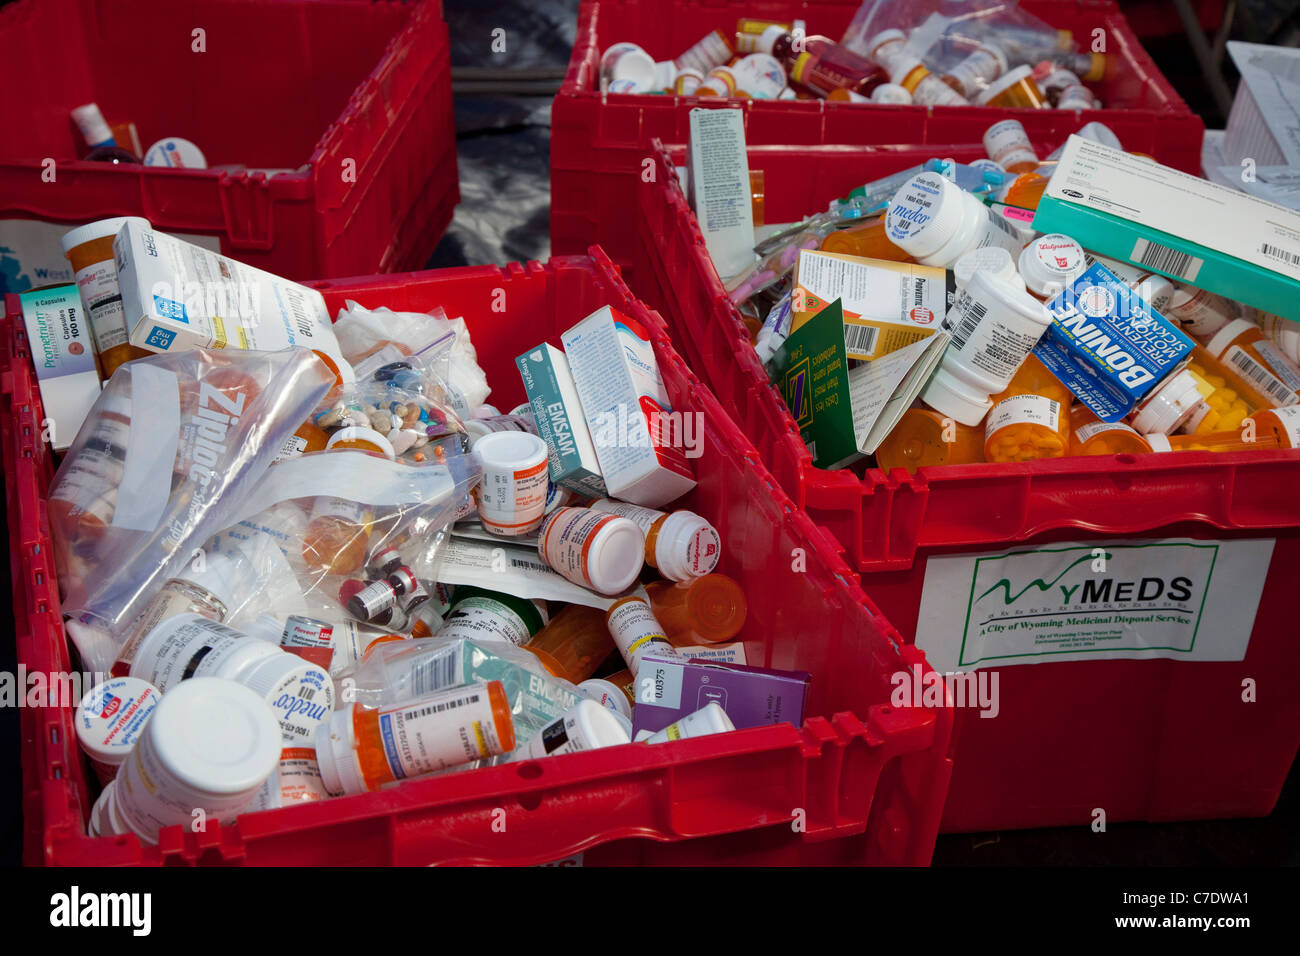 Pharmacists collect unwanted or expired prescription and over-the-counter medicines for safe disposal. - Stock Image